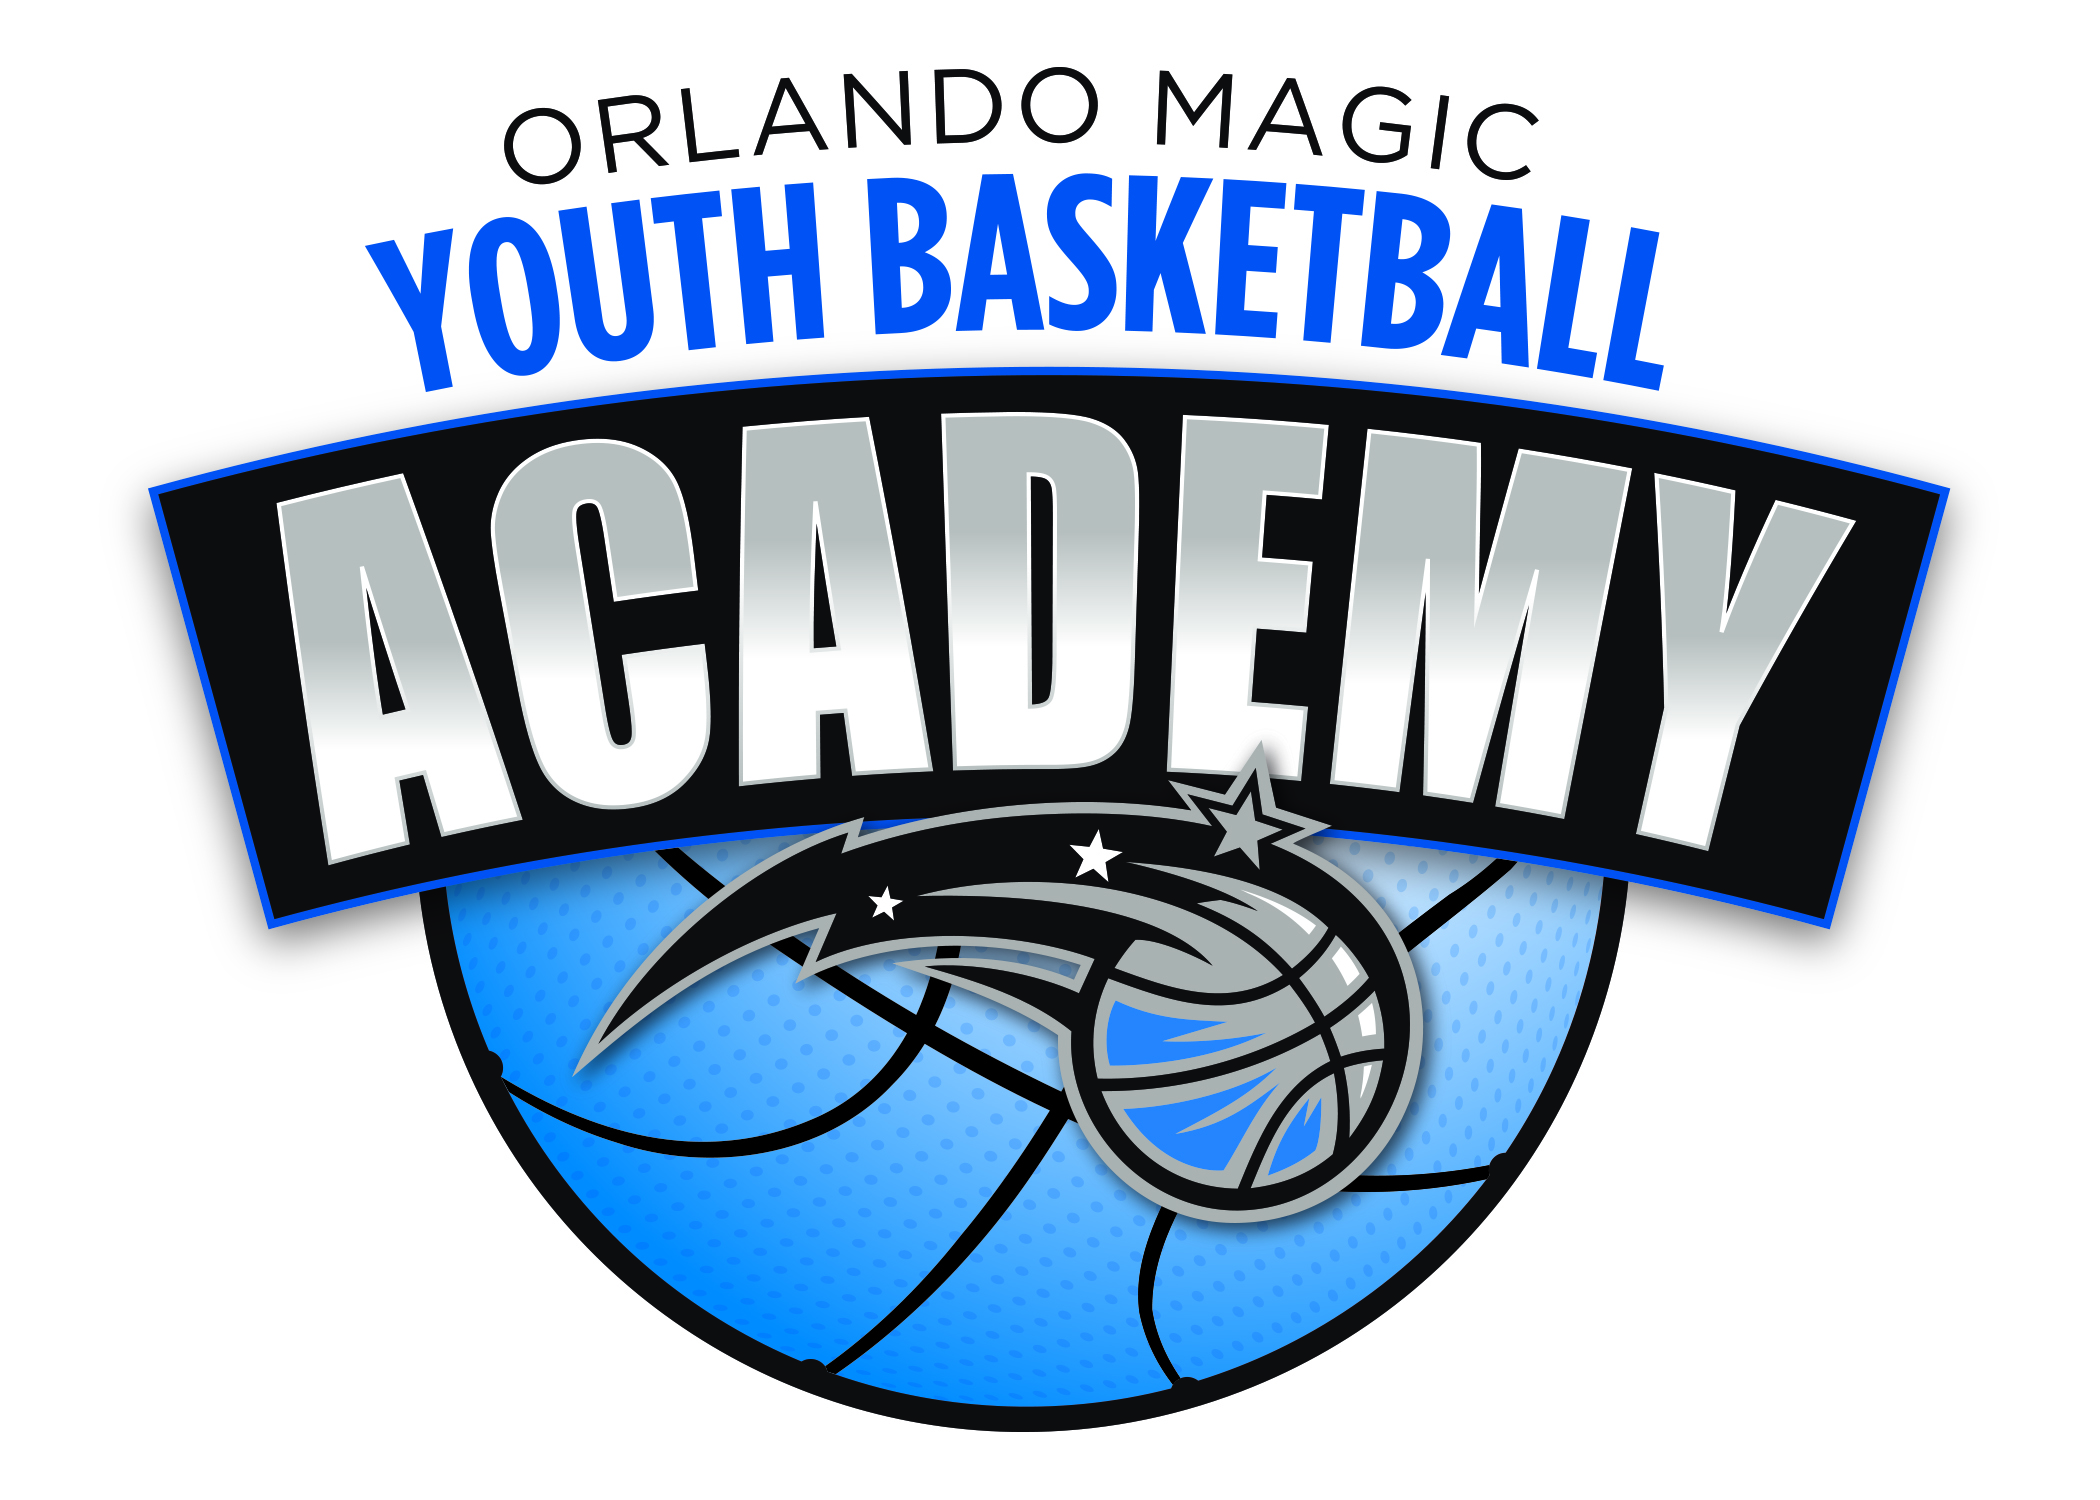 ORLANDO (FNN SPORTS) - Orlando Head Coach Frank Vogel, Magic player Evan Fournier, Nick Anderson and Bo Outlaw train youth at the Orlando Magic FIT Combine Wednesday.